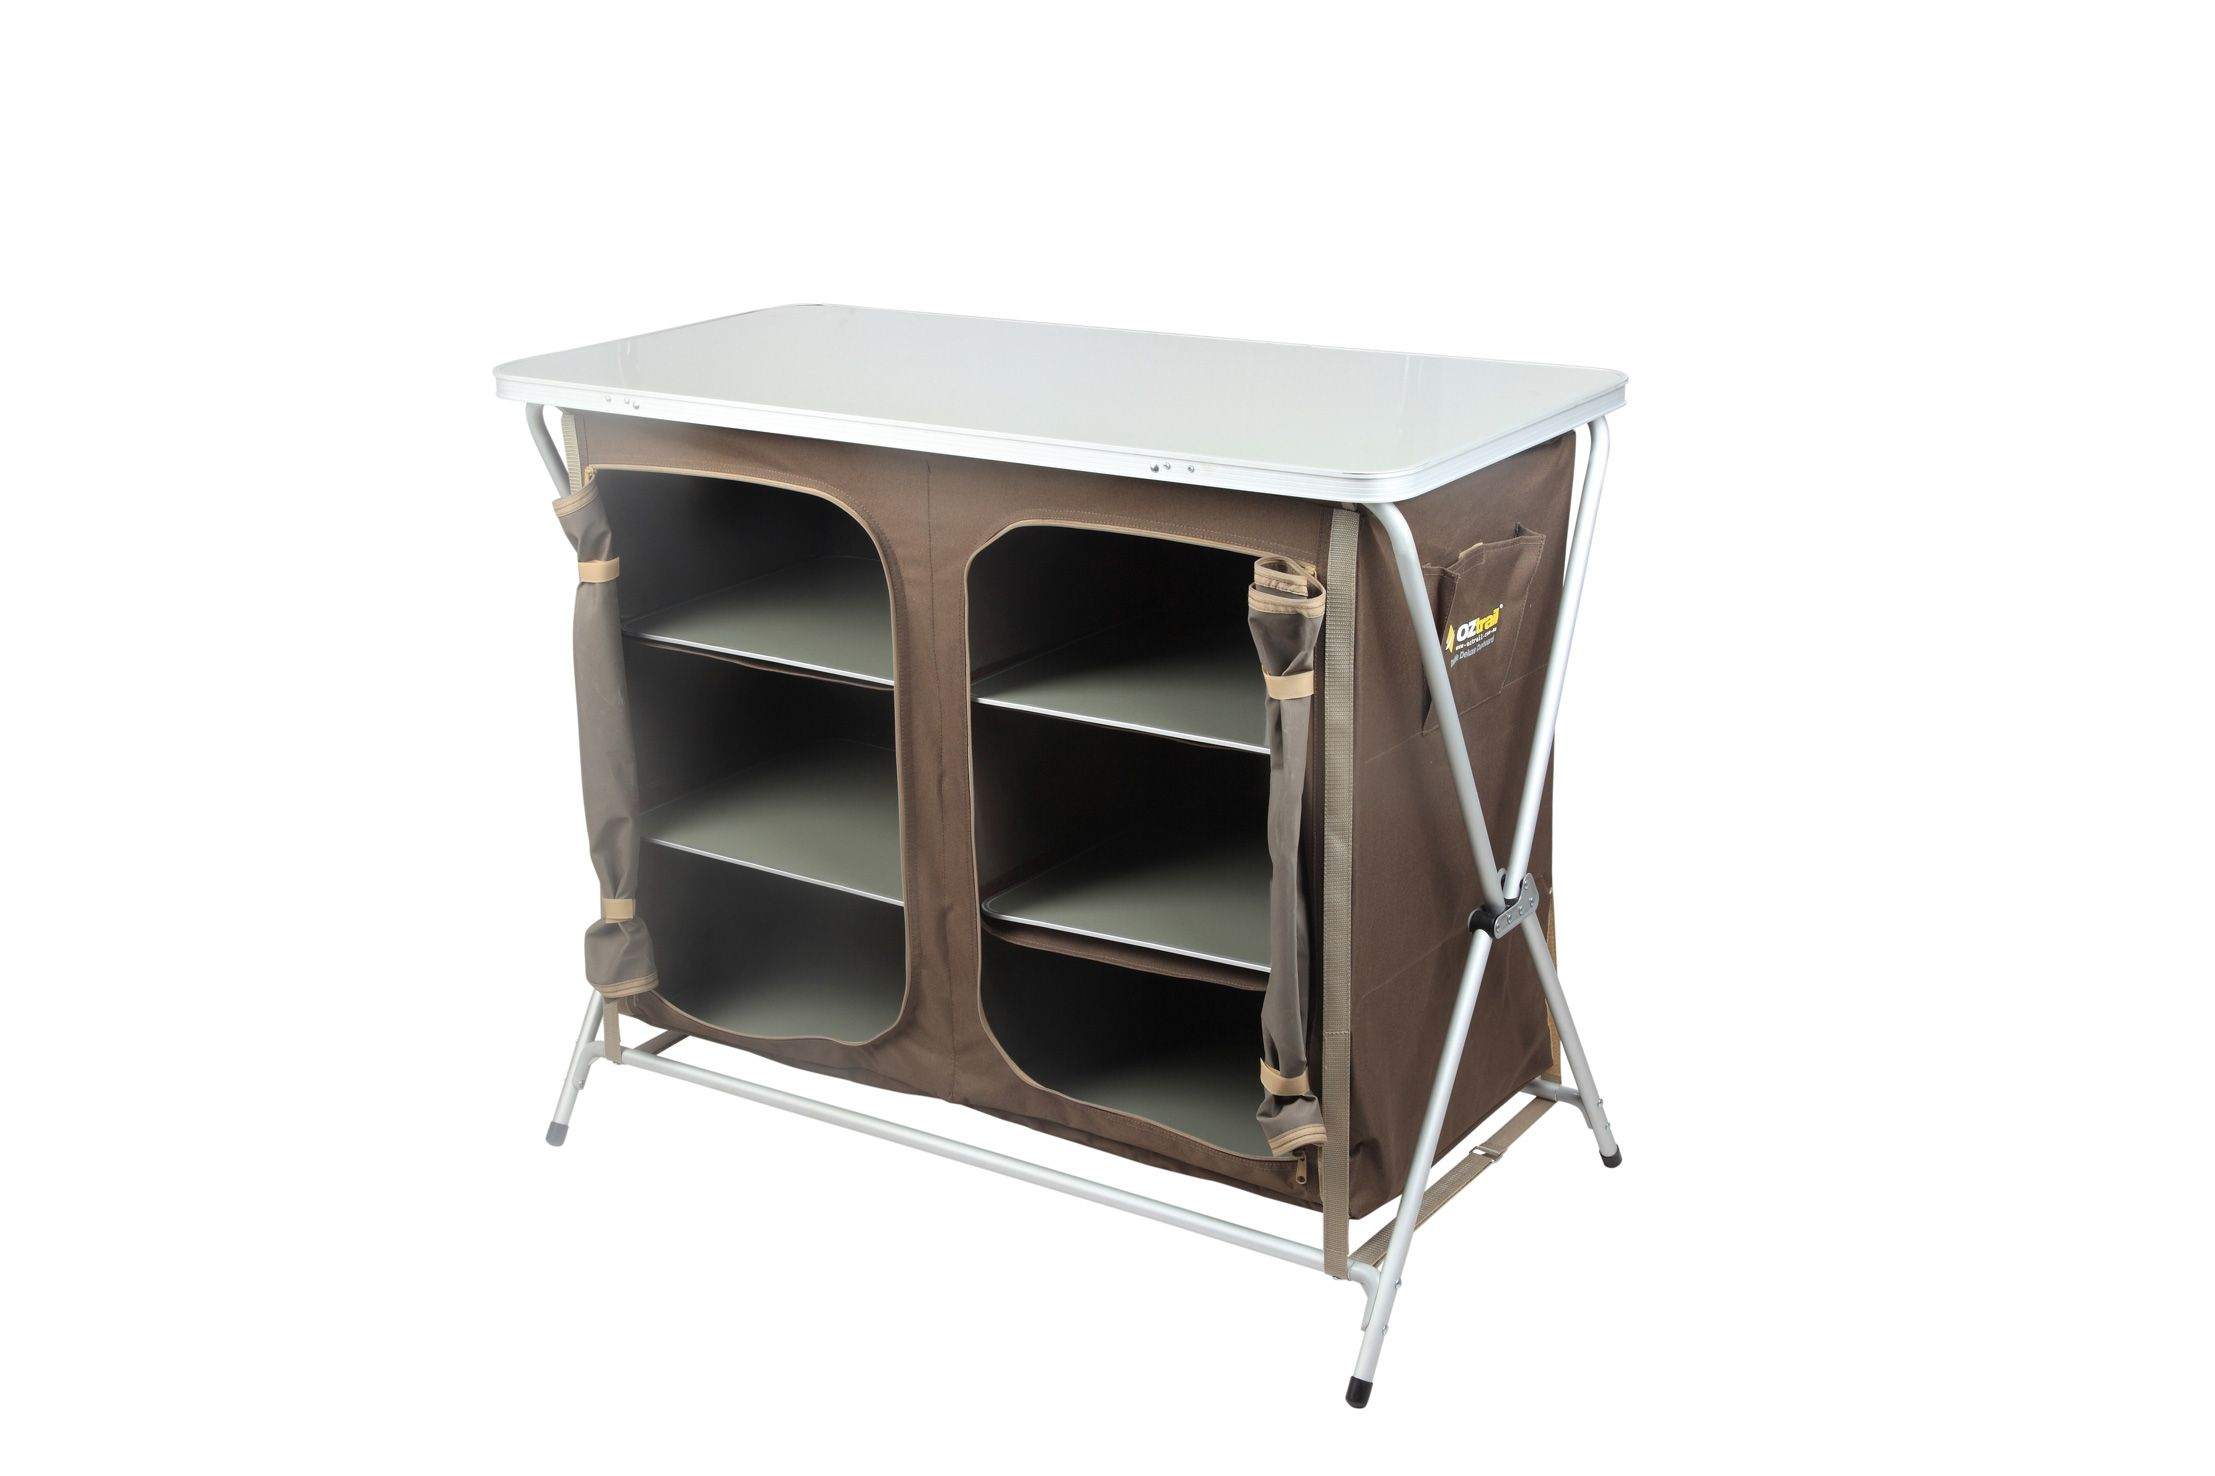 Kampa Zara Cupboard | Camping | Pinterest | Cupboard, Camping and ...